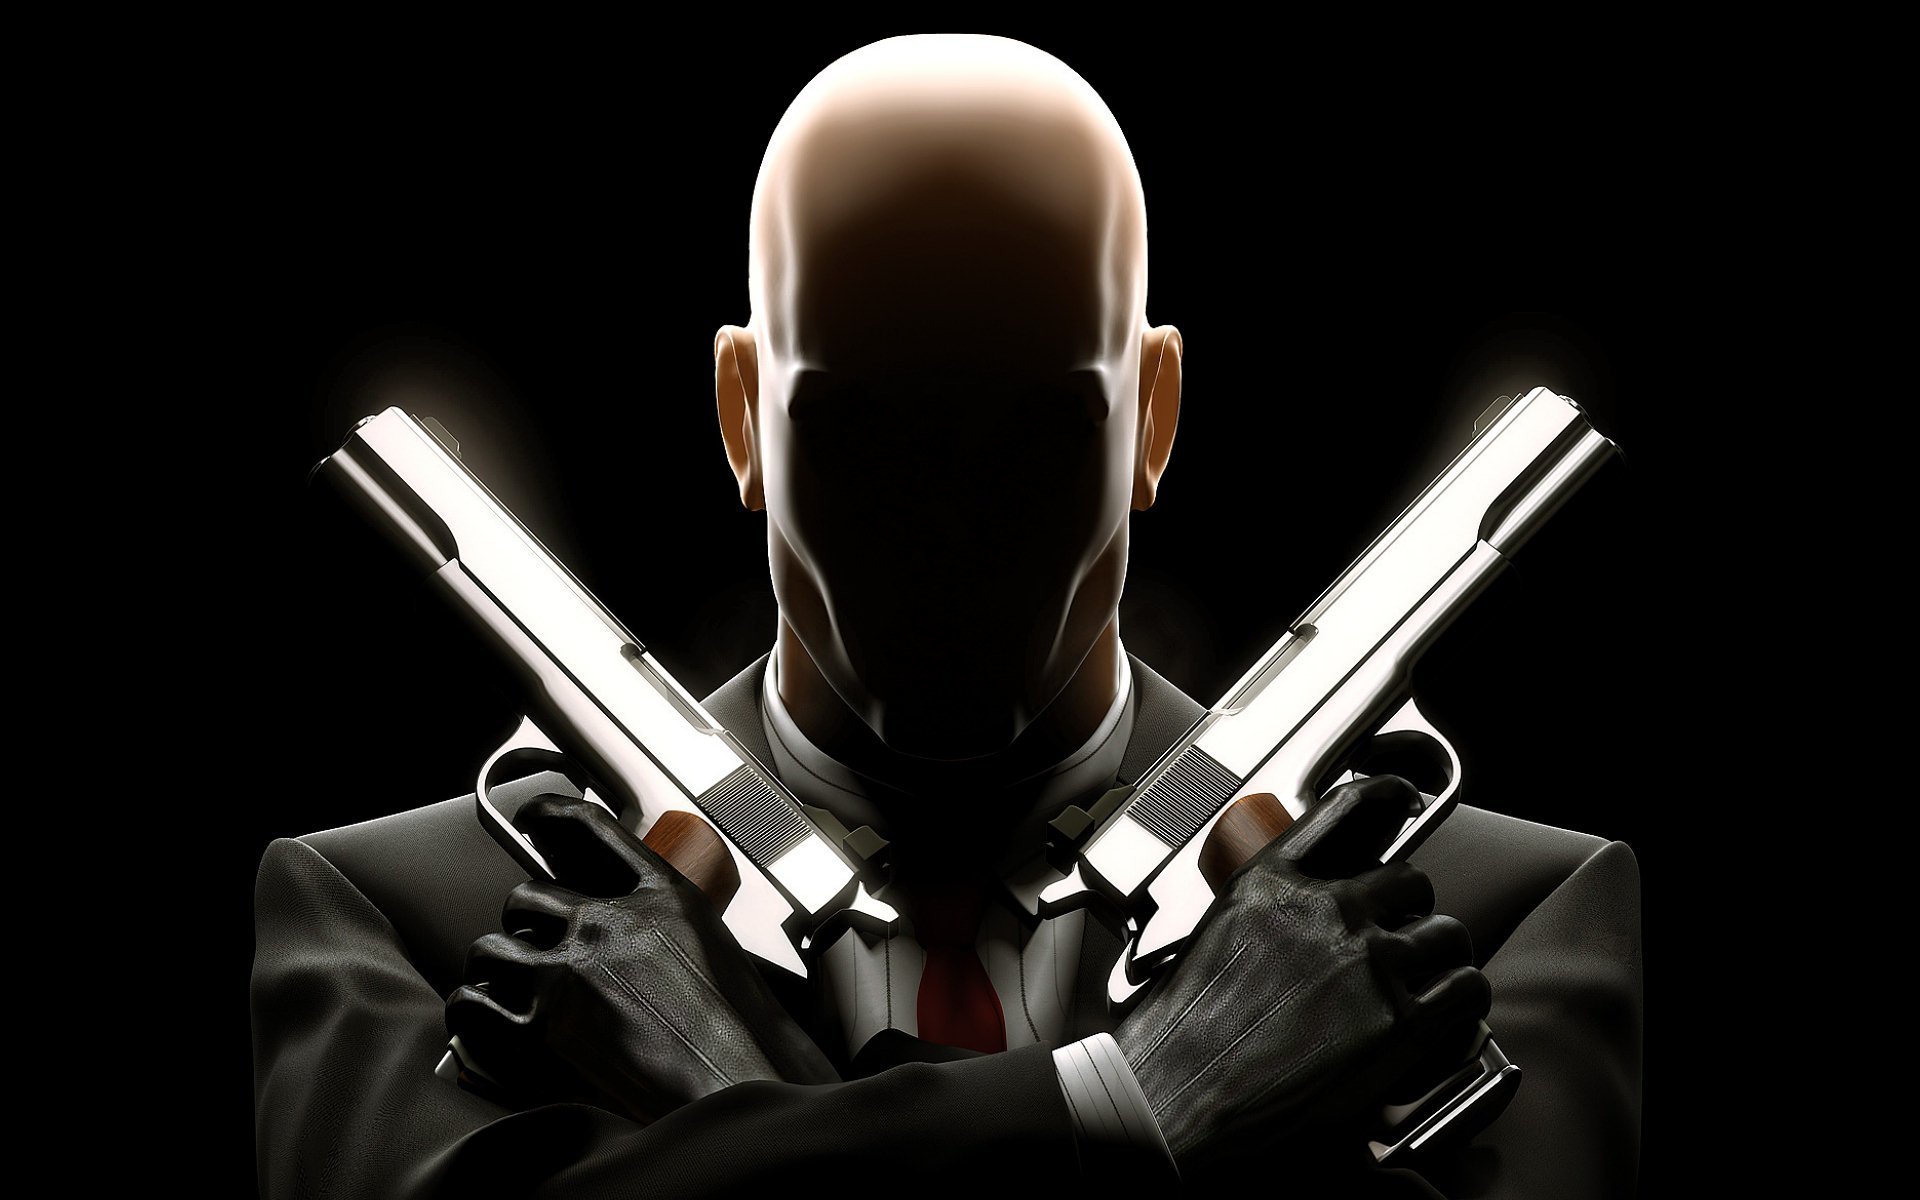 52 Hitman HD Wallpapers | Backgrounds - Wallpaper Abyss